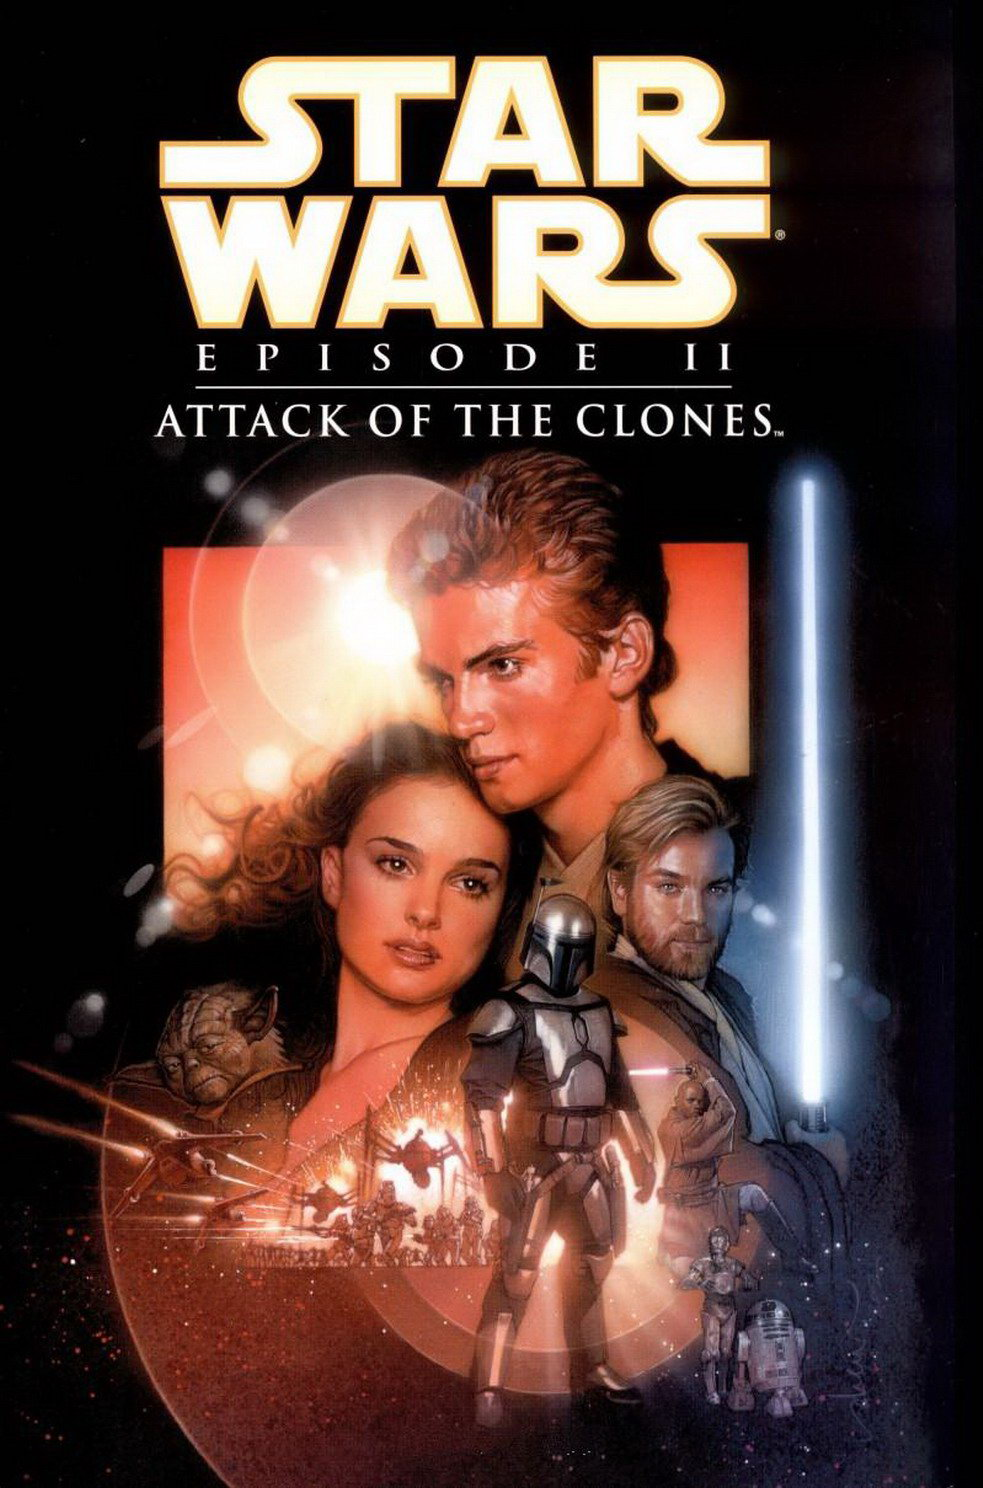 「STAR WARS EPISODE II: ATTACK OF THE CLONES」の画像検索結果